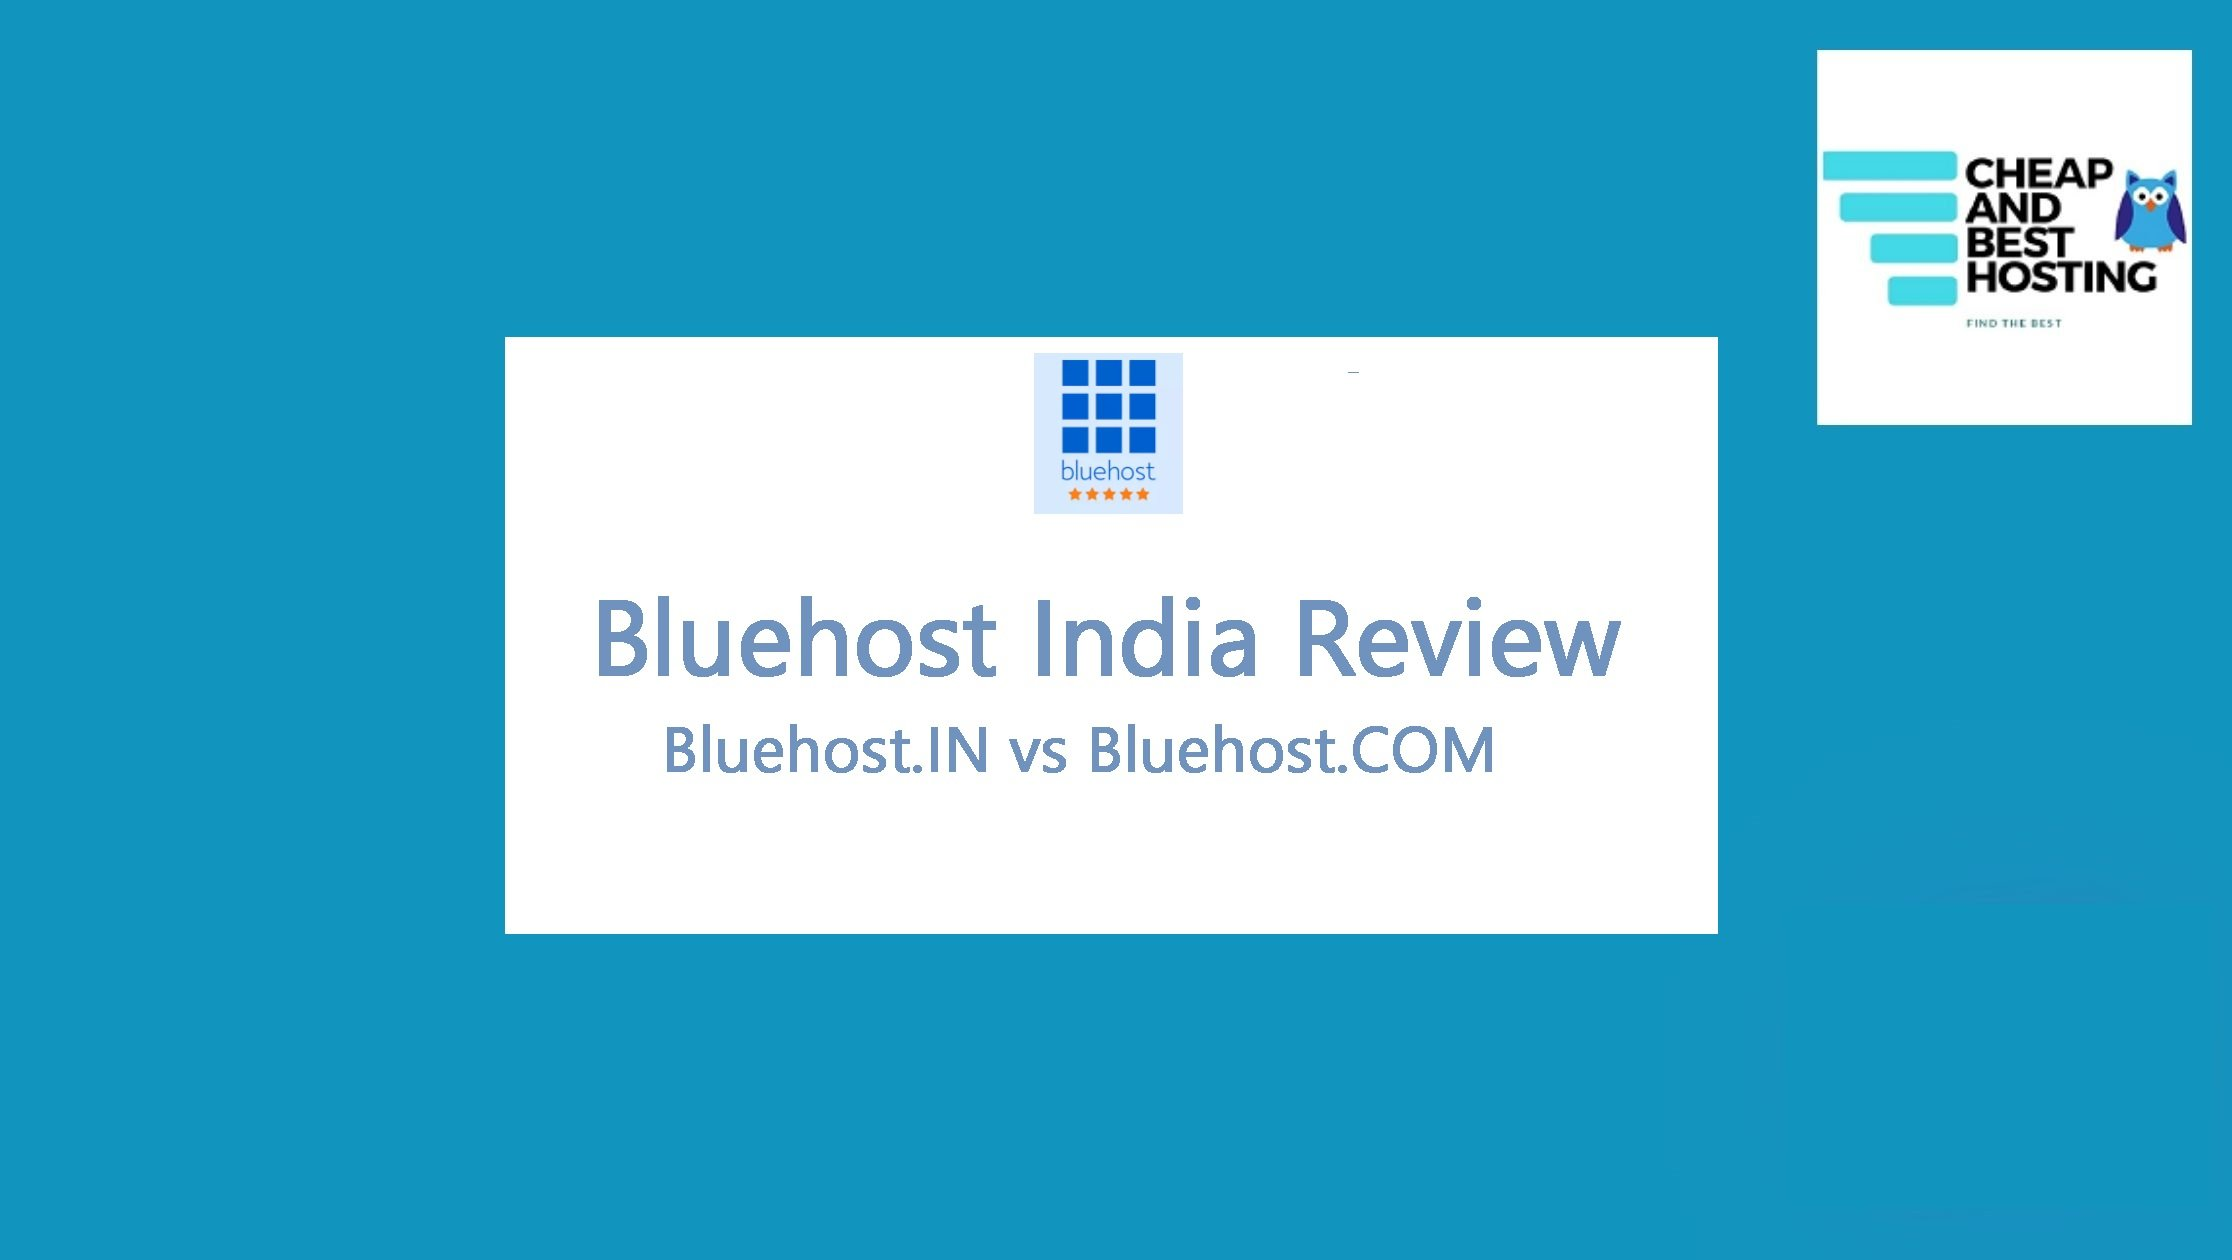 BLUEHOST INDIA REVIEW AND COMPARISION BLUEHOST IN VS BLUEHOST COM